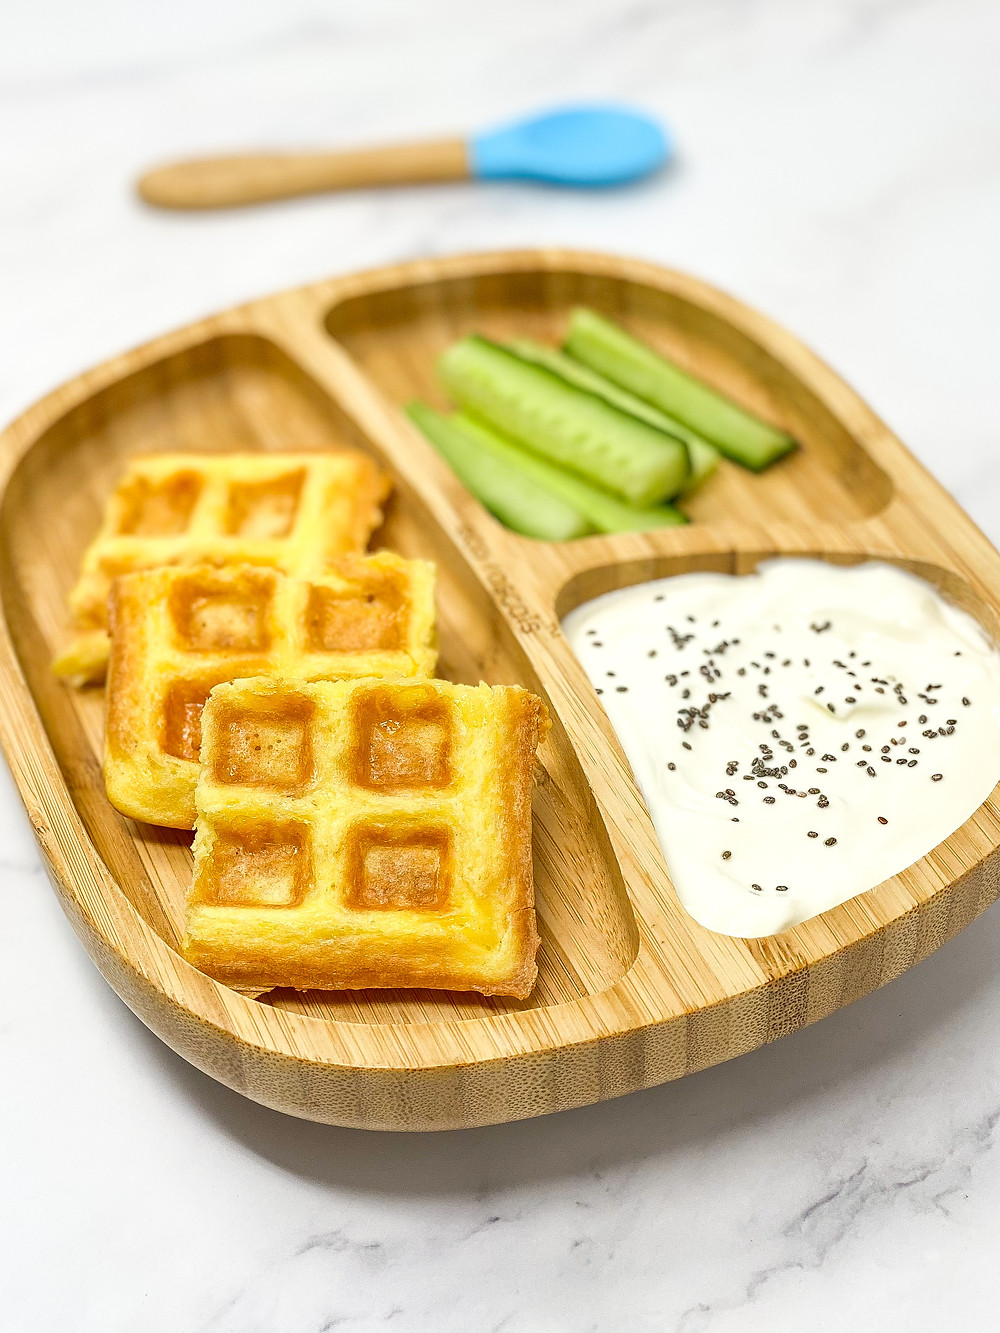 CHAFFLE served on bamboo plate for blw